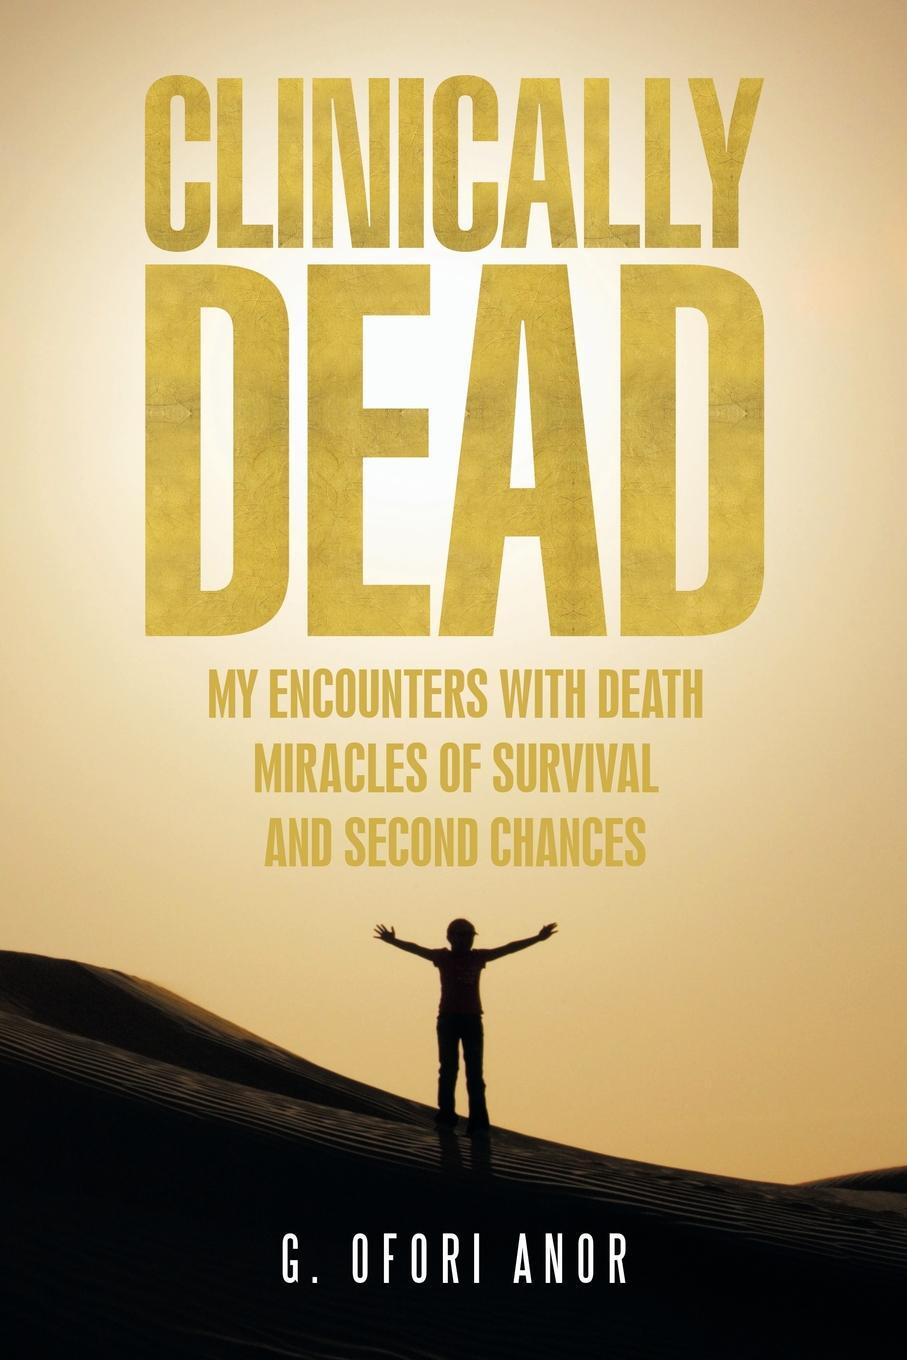 Clinically Dead. My Encounters with Death, Miracles of Survival, and Second Chances